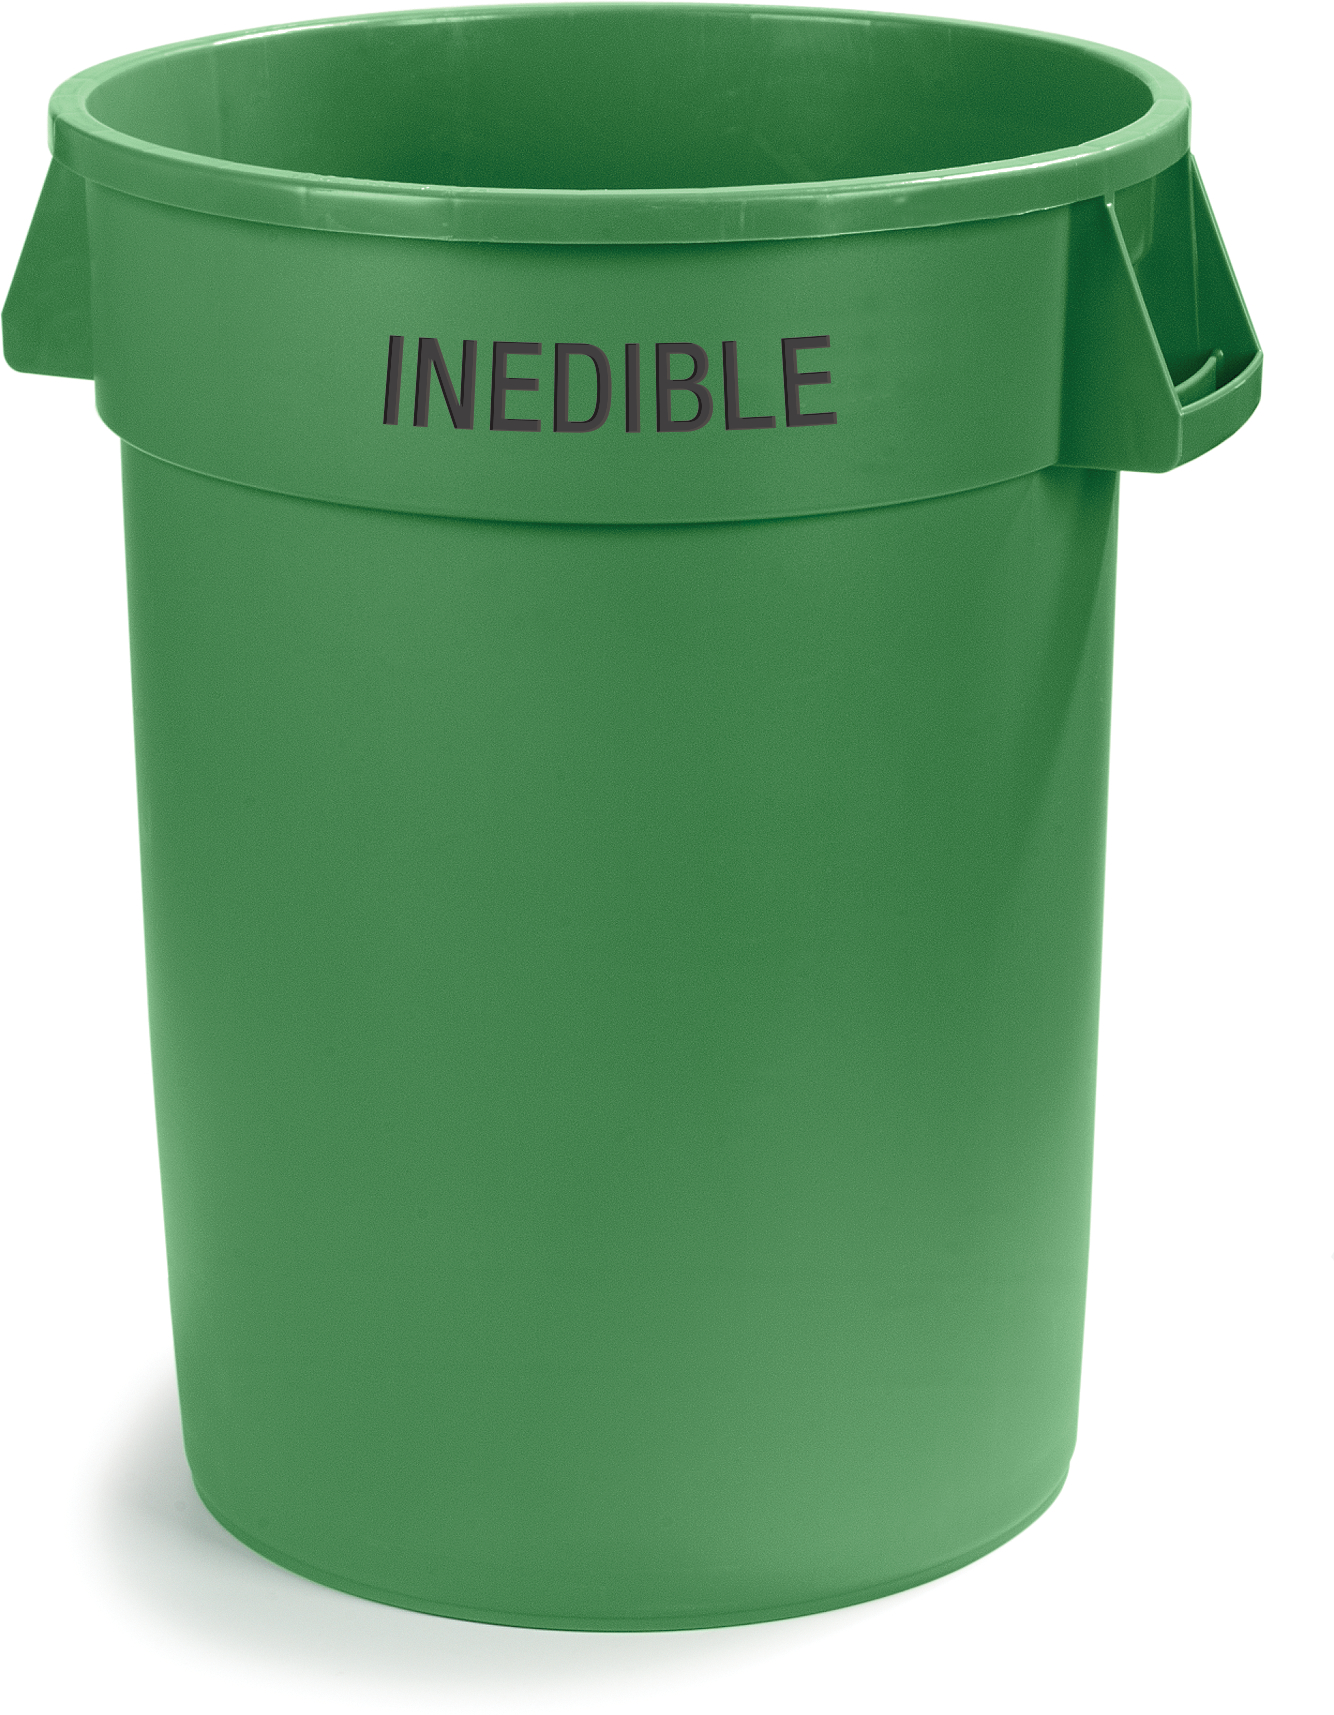 Bronco Round INEDIBLE Waste Container 32 Gallon - Green